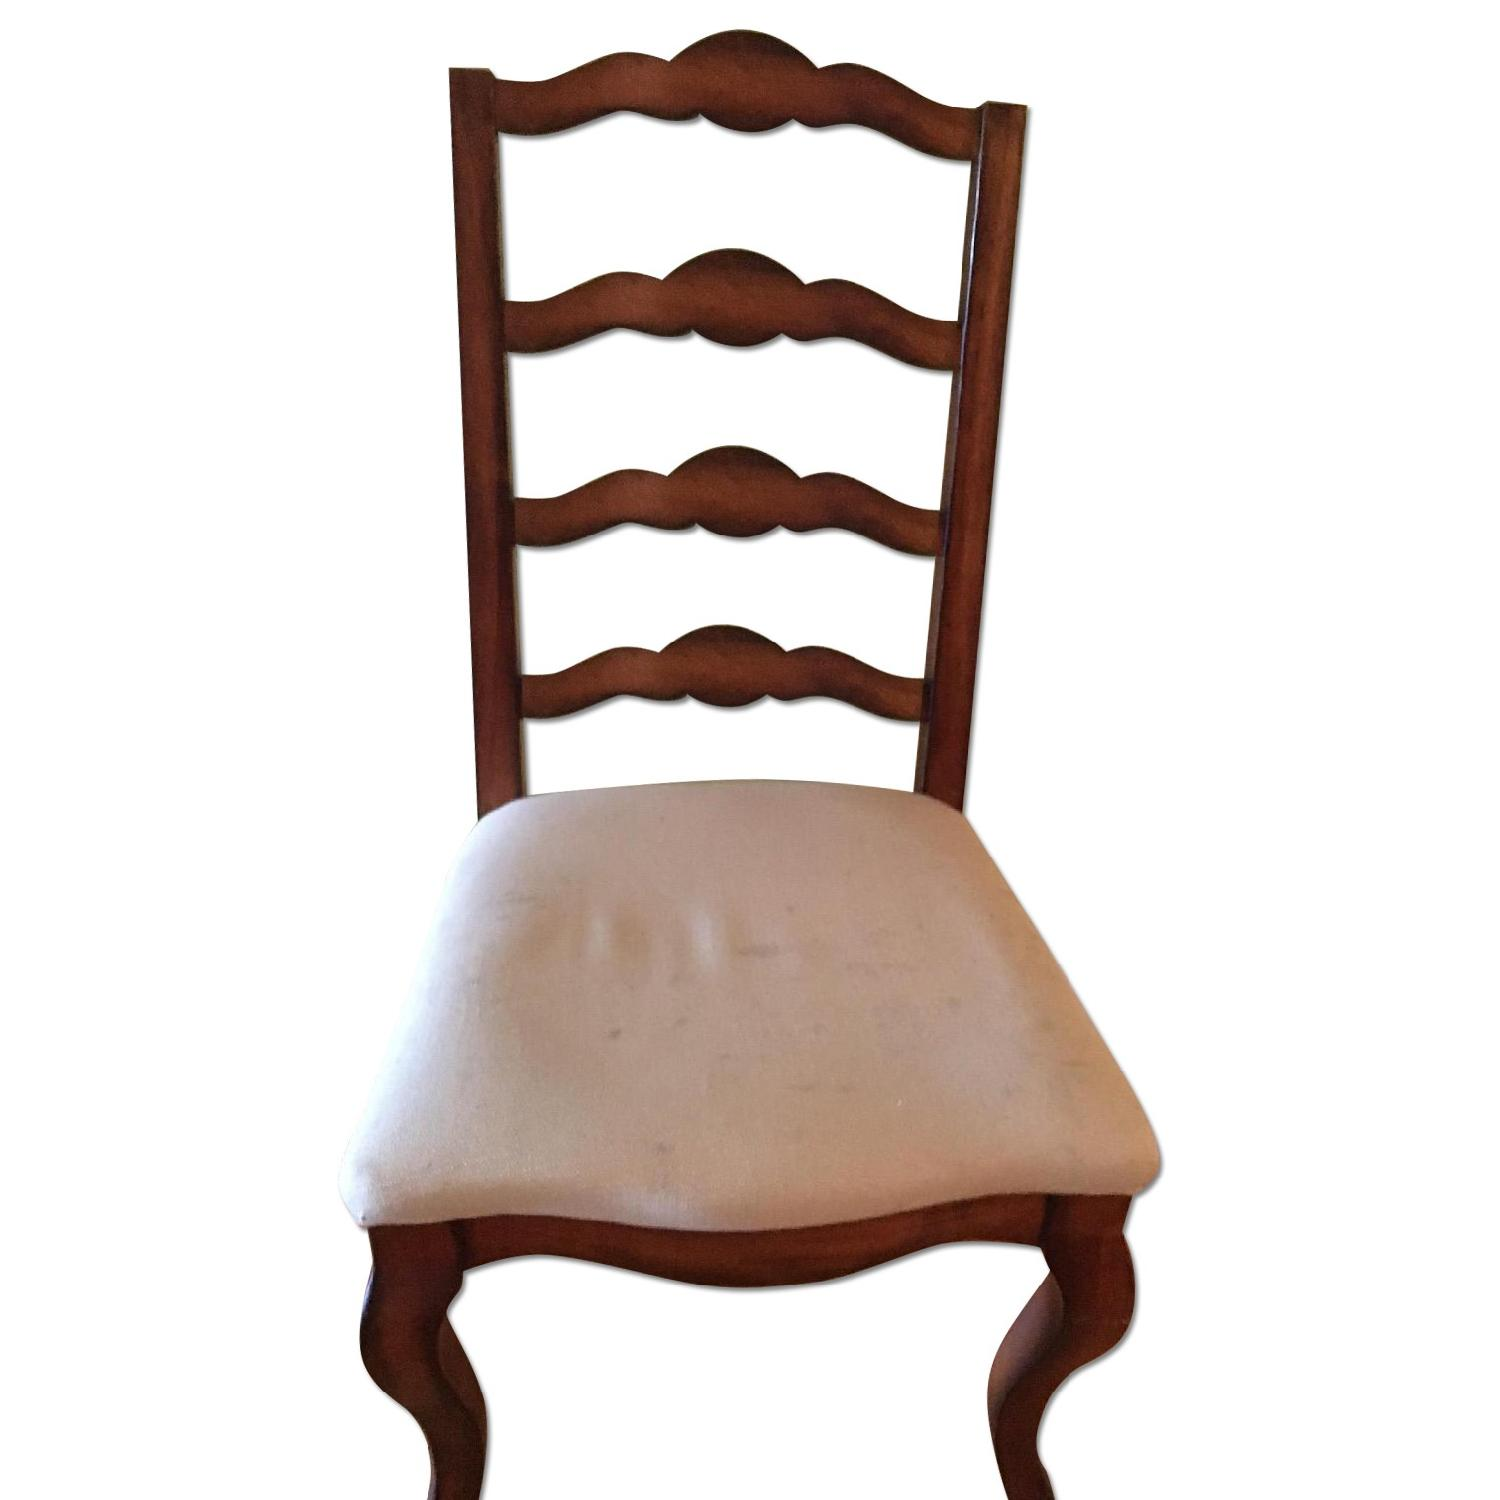 Domain Furniture Ladderback Dining Room Chairs - image-0